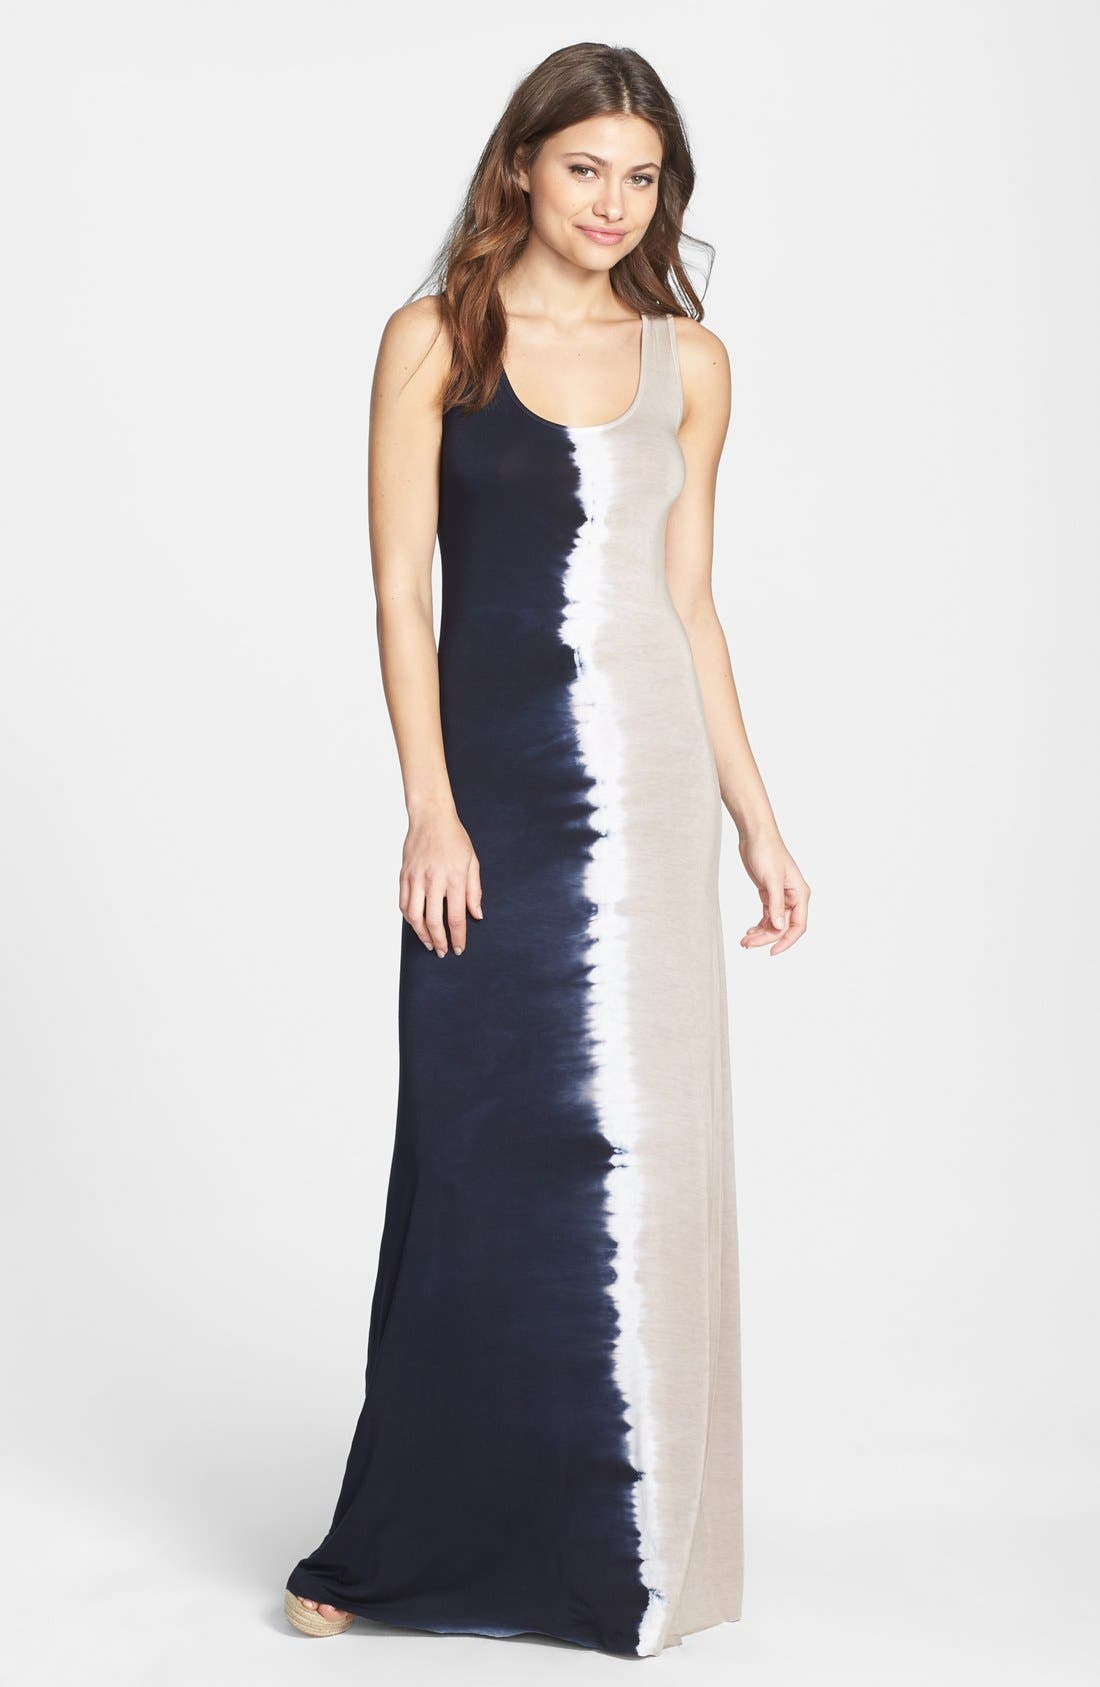 Main Image - Felicity & Coco Tie Dye Jersey Maxi Dress (Petite) (Nordstrom Exclusive)